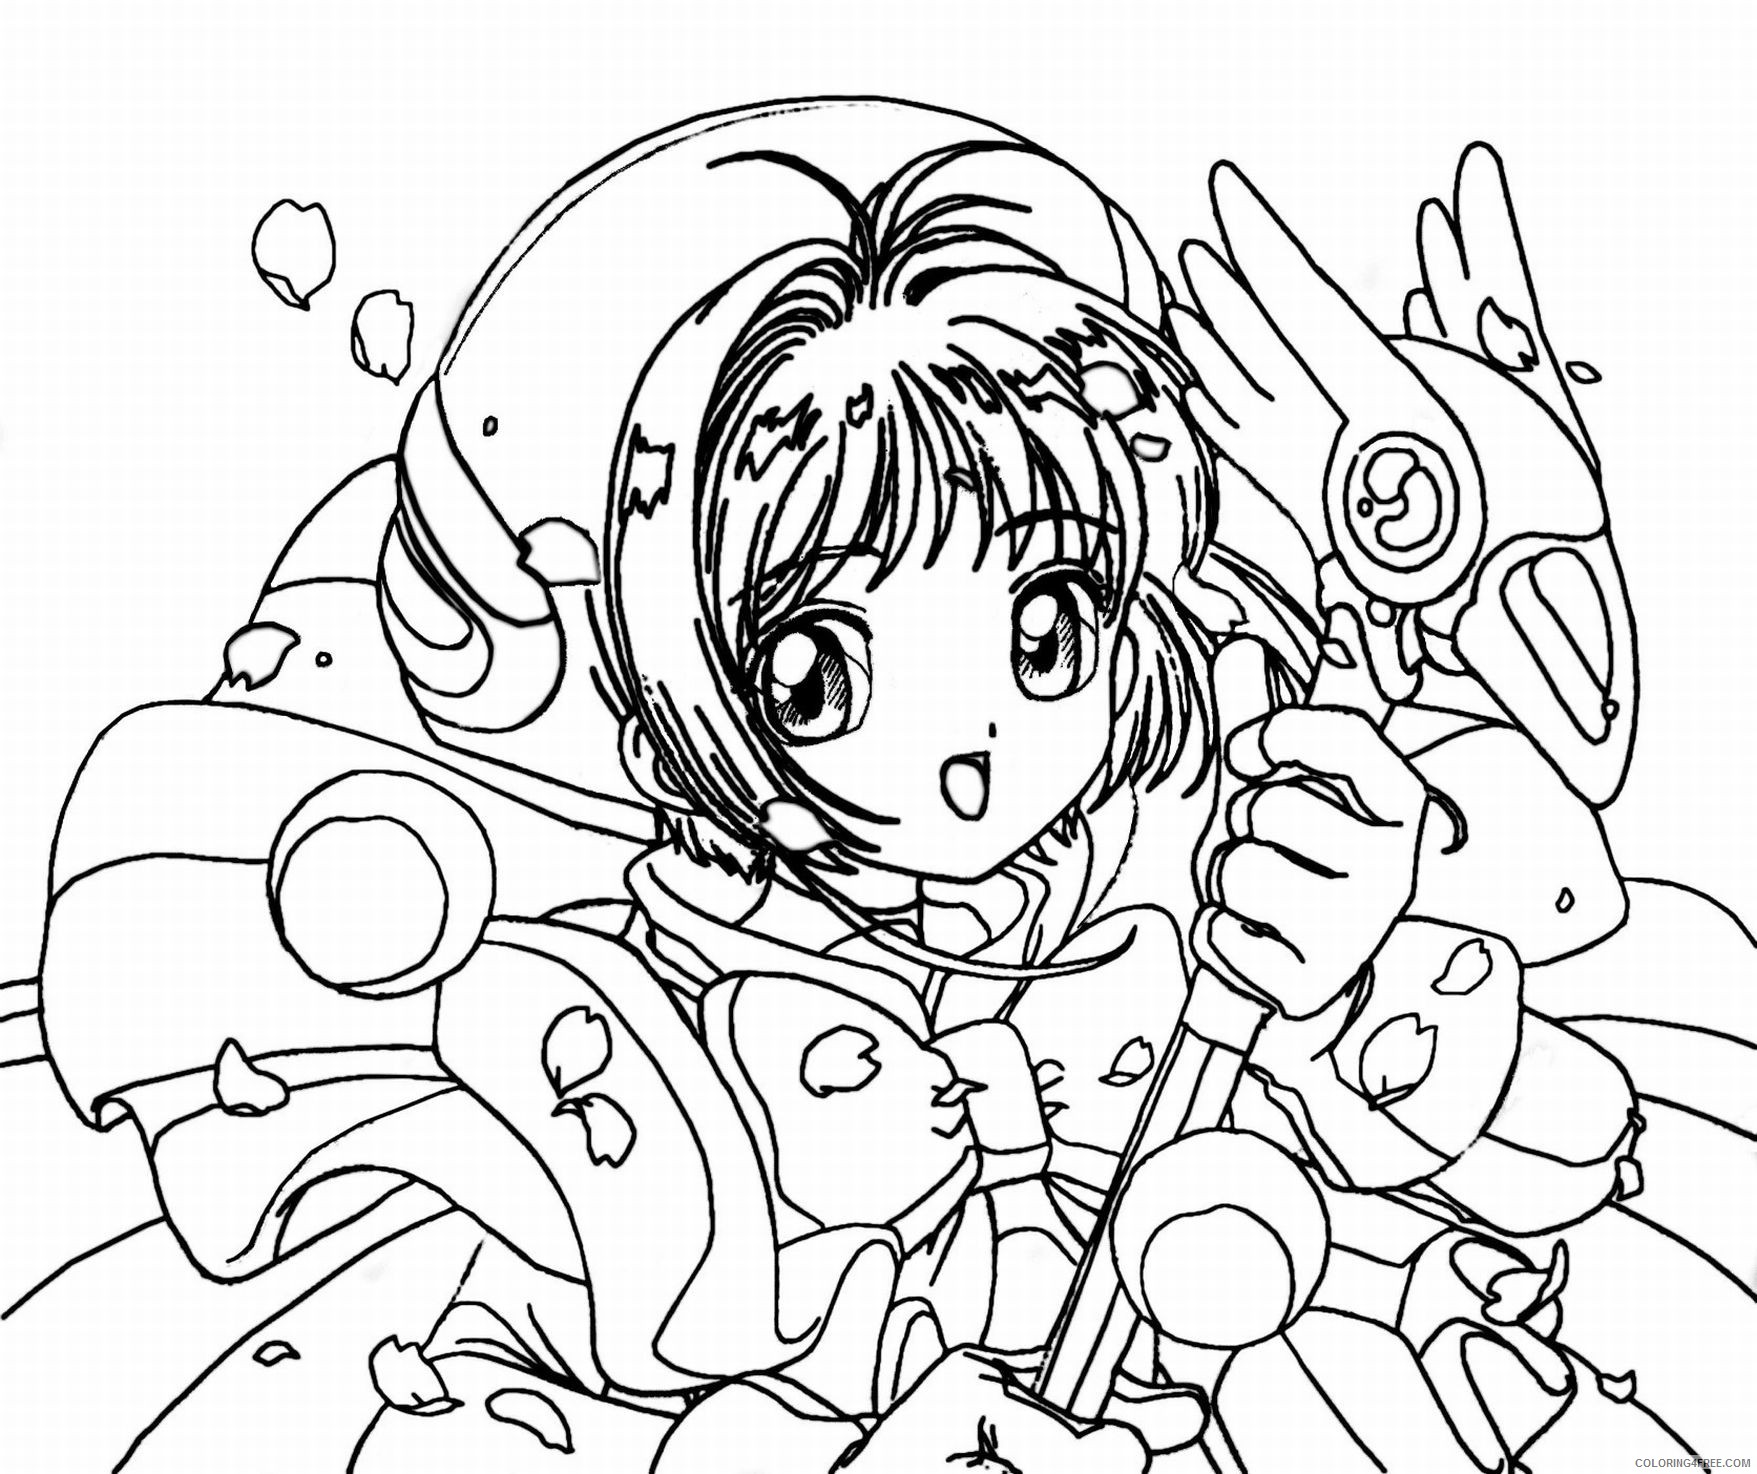 anime girl coloring pages with magic wand Coloring4free